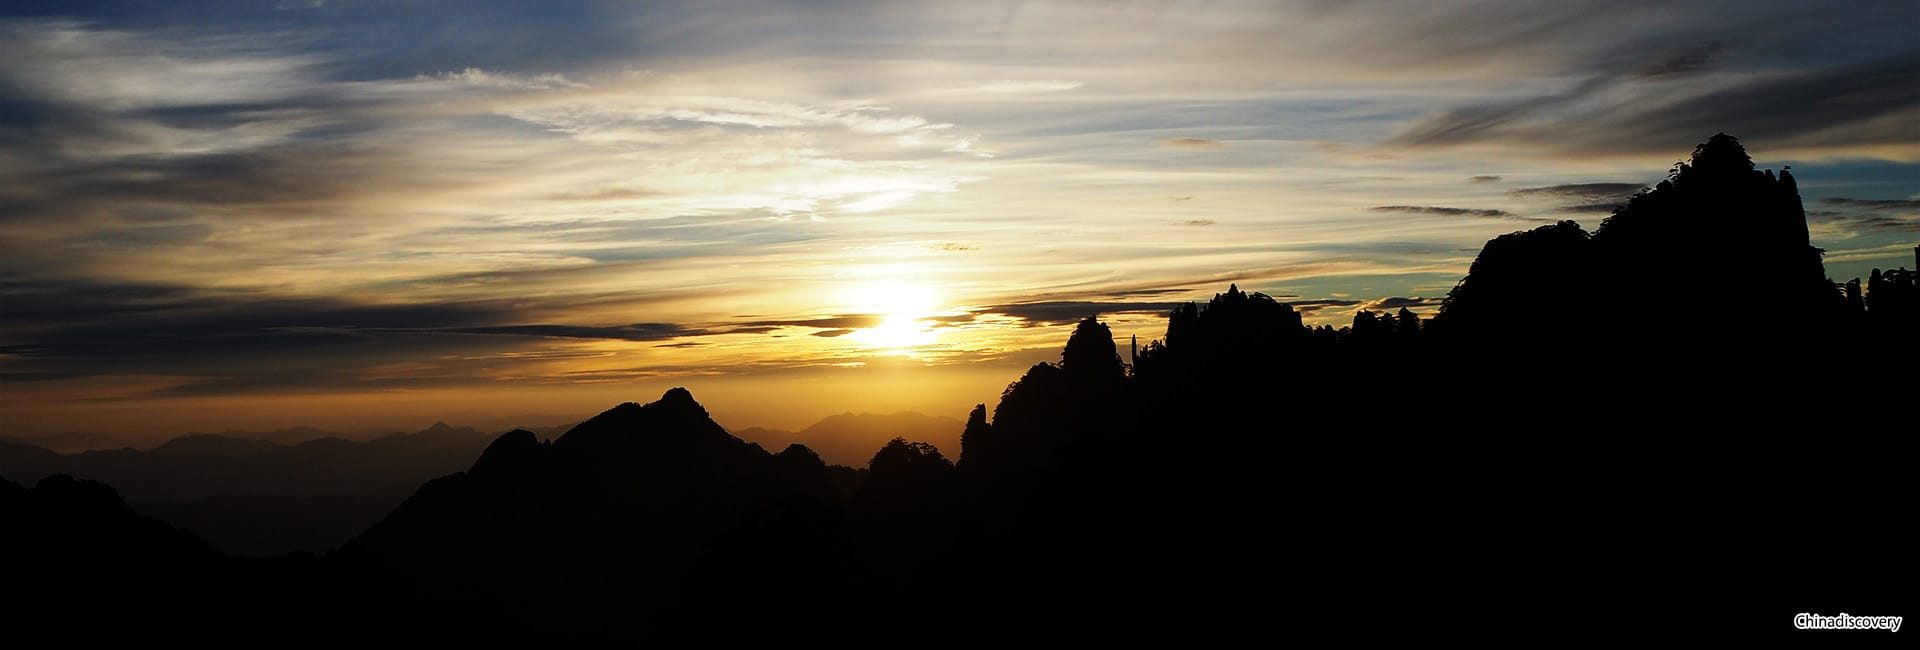 4 Days Huangshan with Pig's Inn Carefree Countryside Idyll Tour